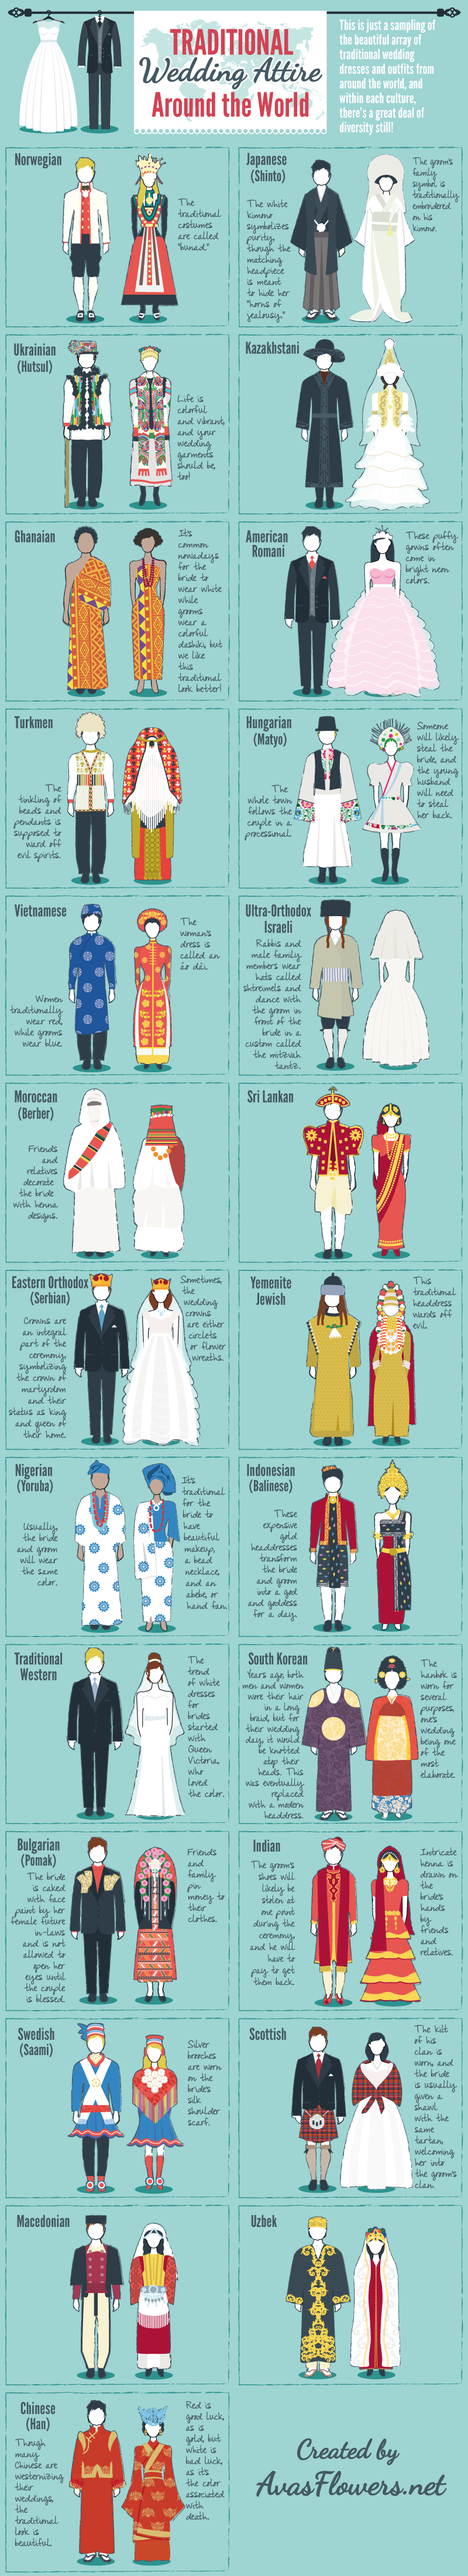 9acdc6216 Infographic - Traditional Wedding Attire Around the World | Avas Flowers